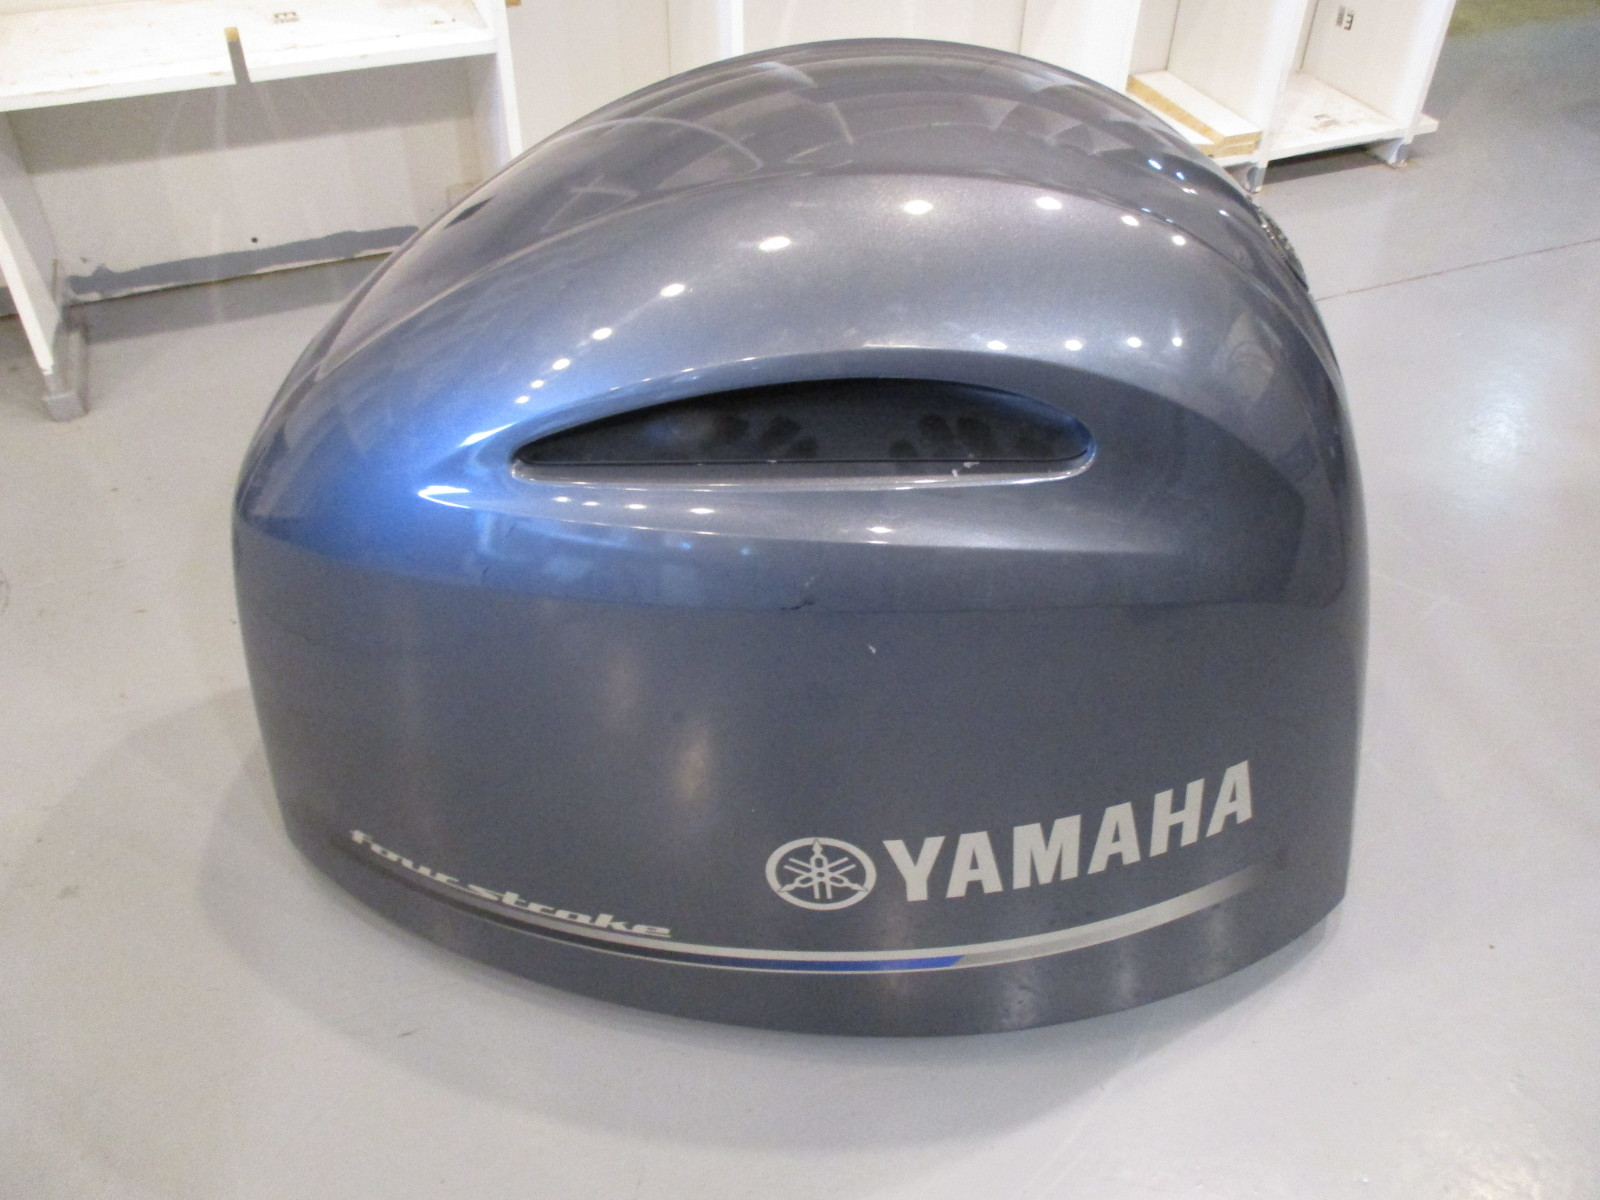 Yamaha outboard marine top engine motor cover cowl 150 hp for Yamaha boat motor cover